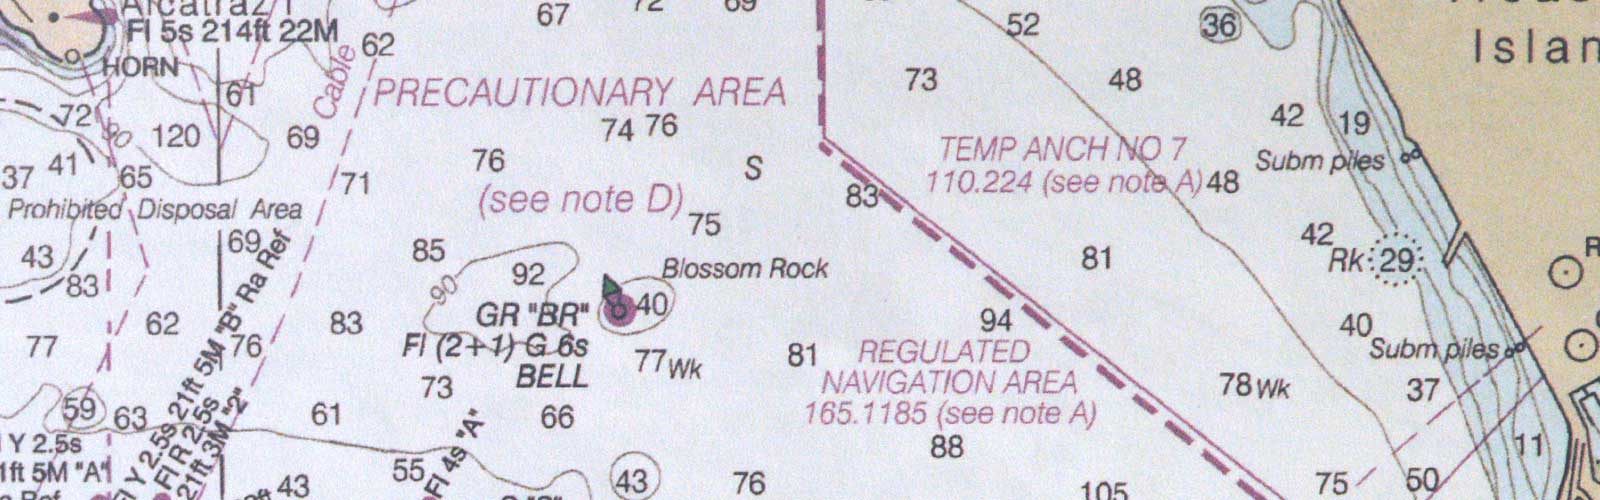 San Francisco Bay navigation map showing location of Blossom Rock